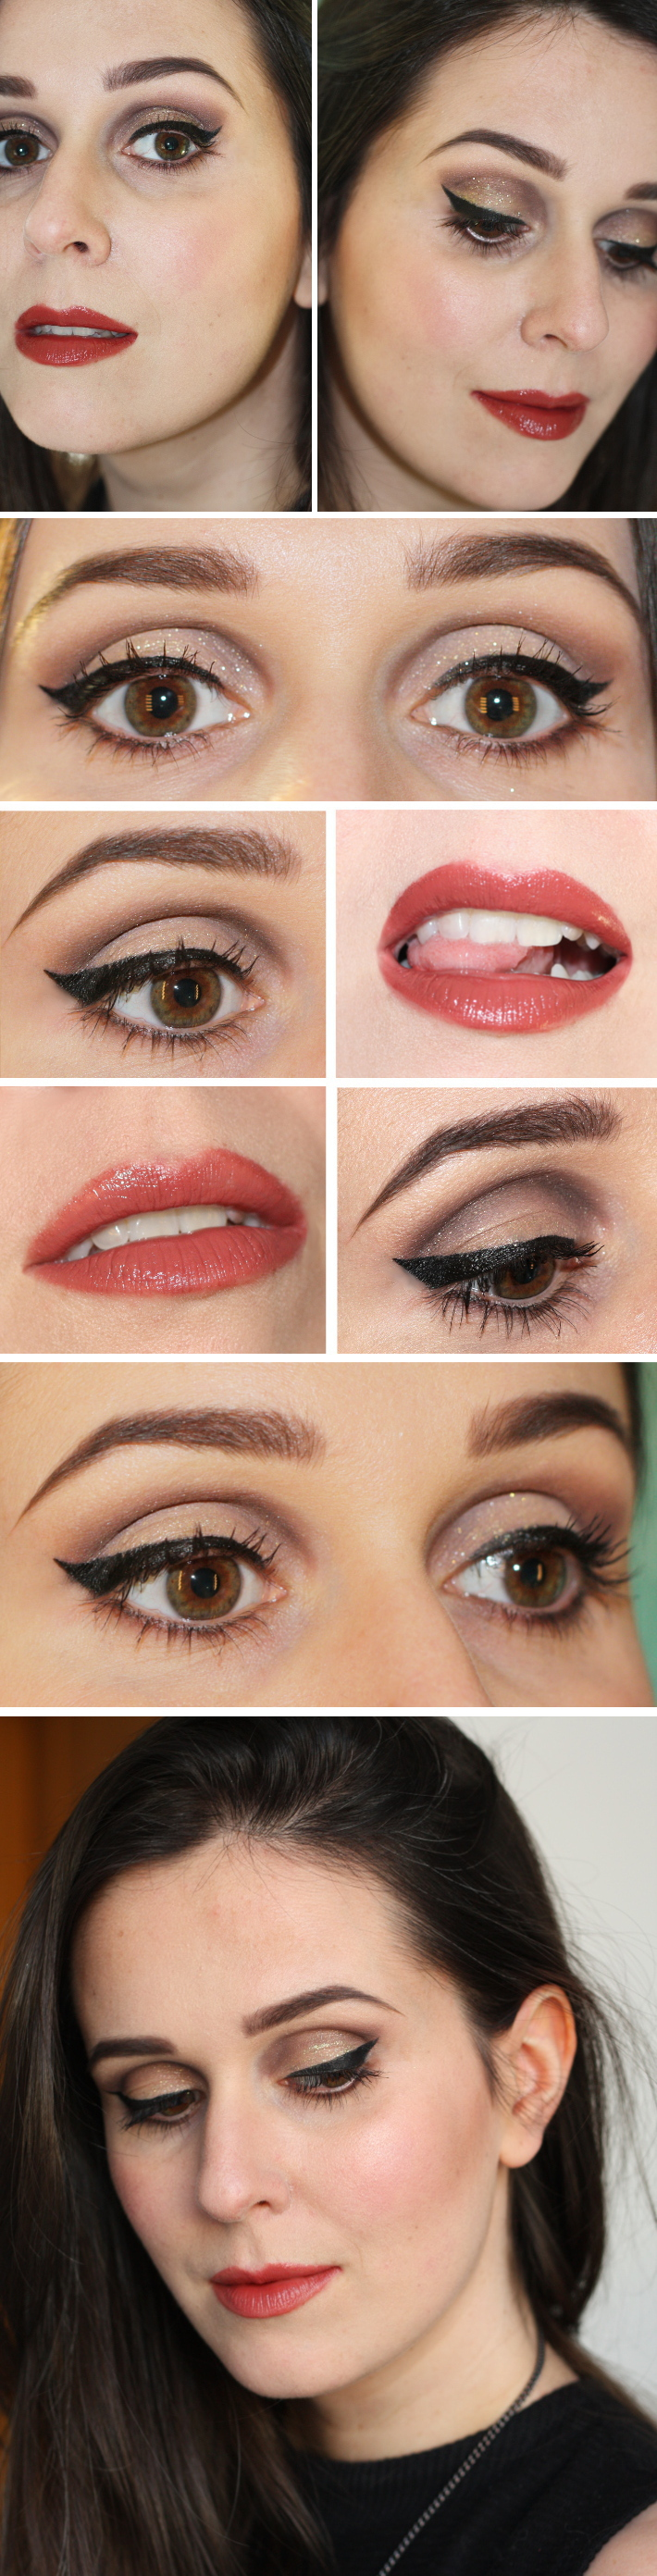 make up tutorial: vampy cat eye with defined crease